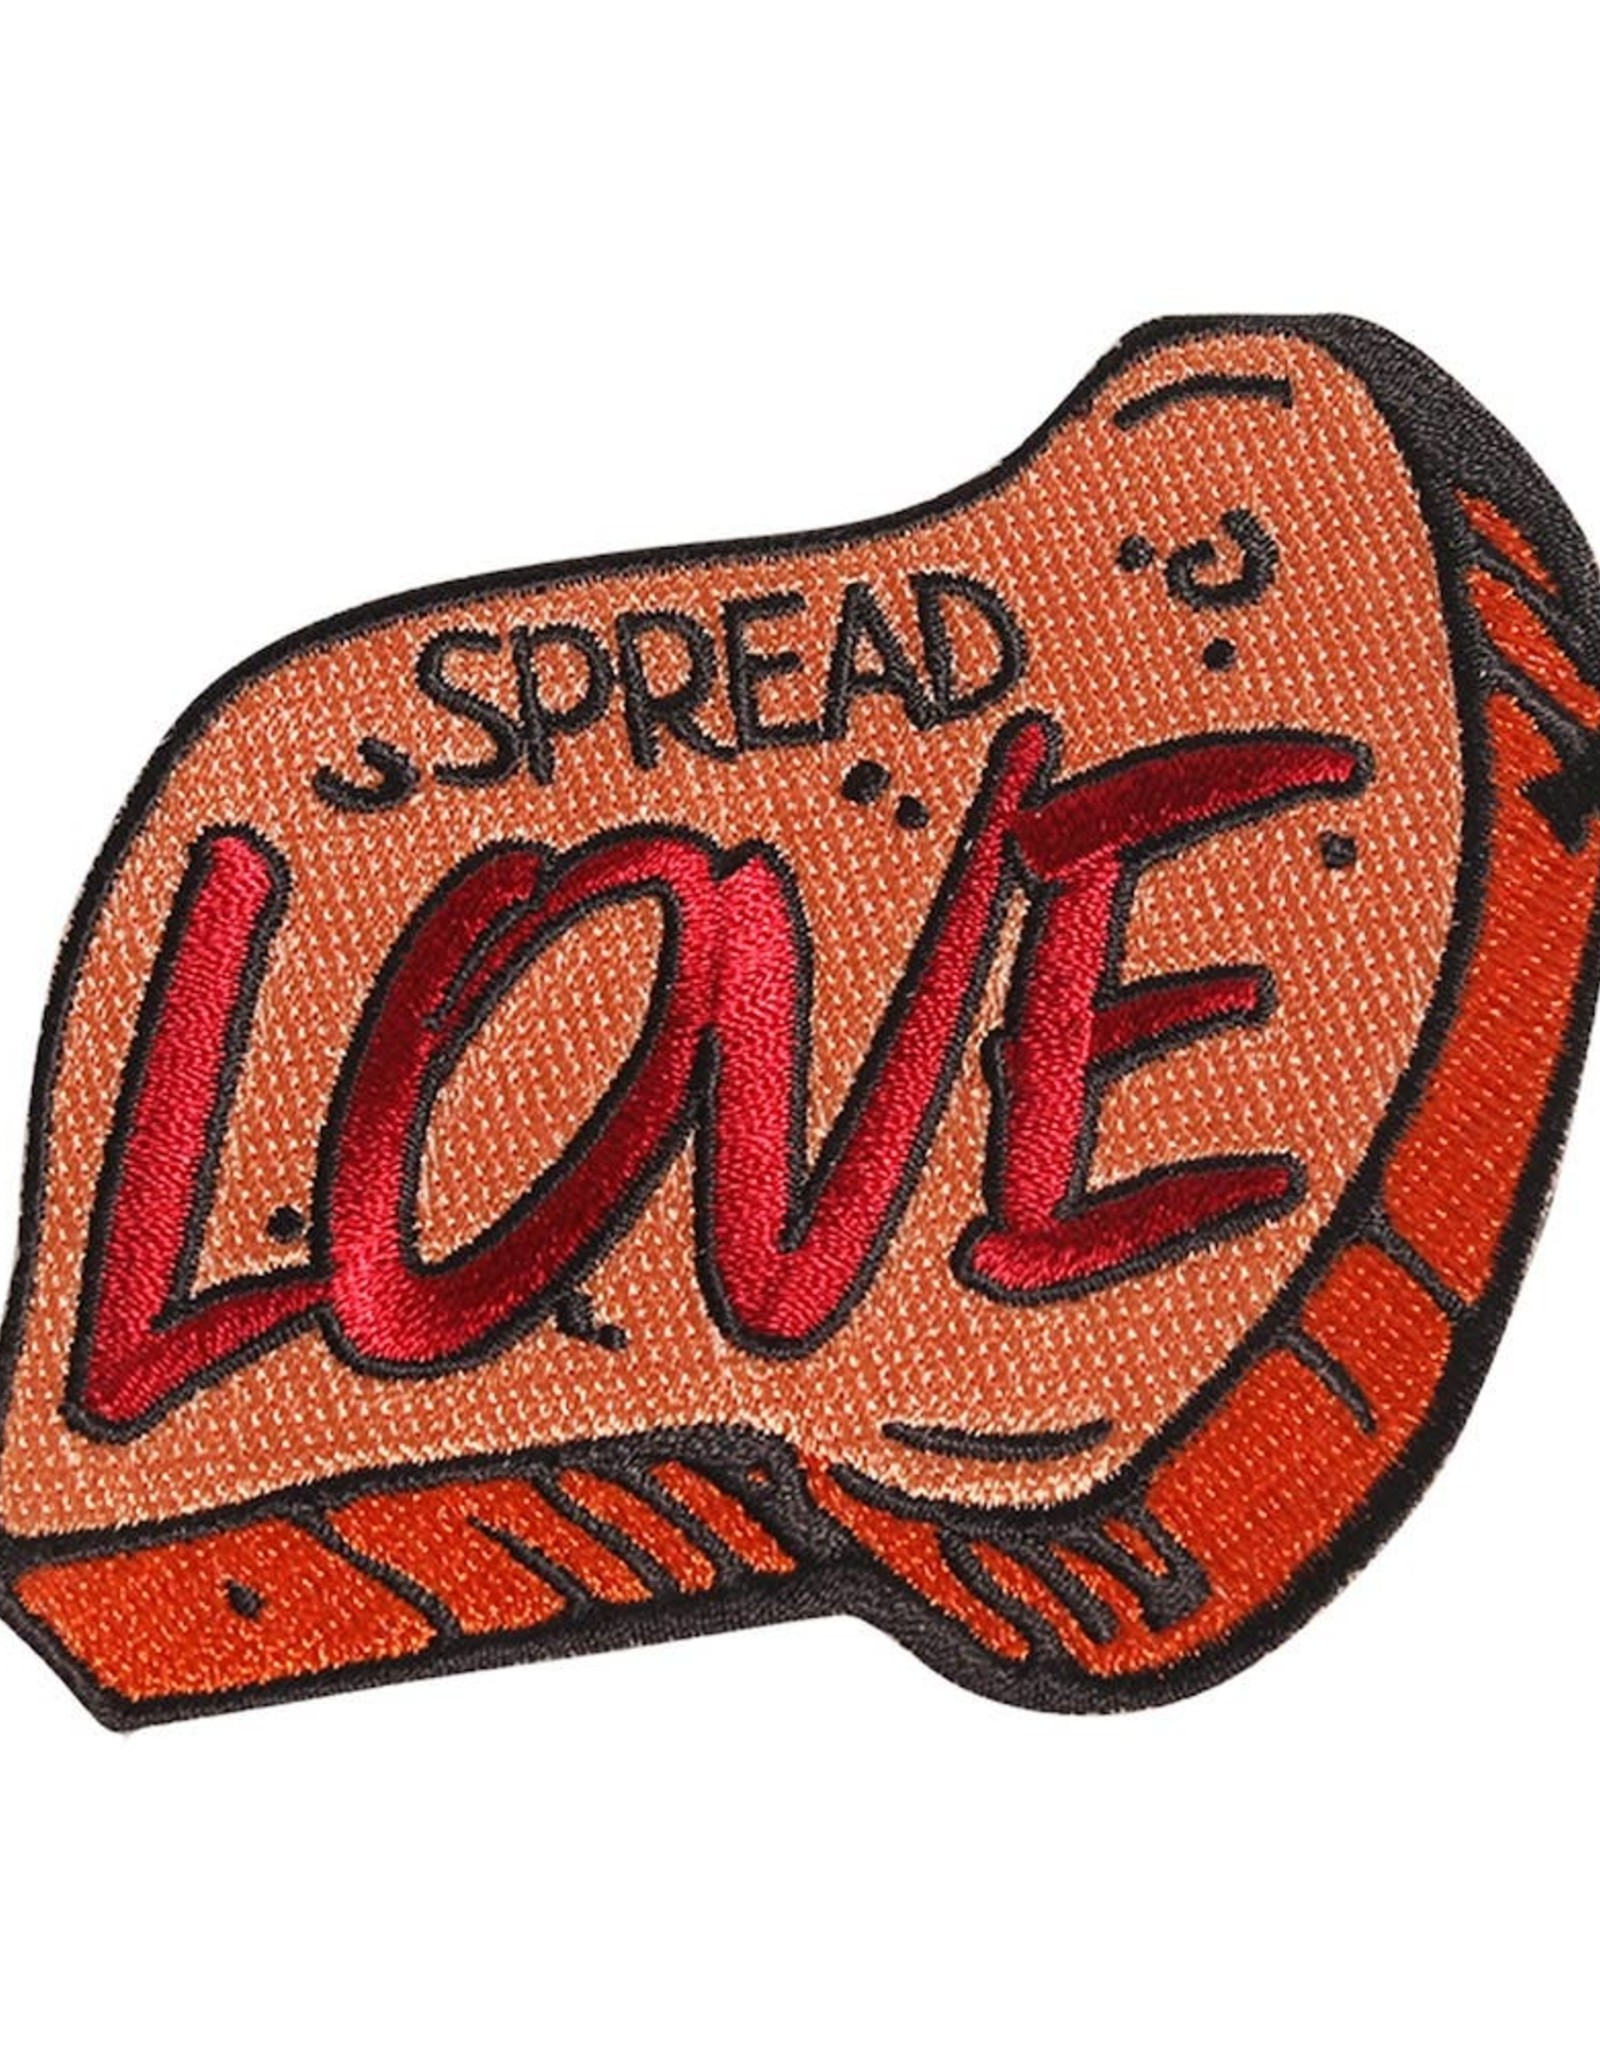 Patches and Pins Patch: Spread Love Toast